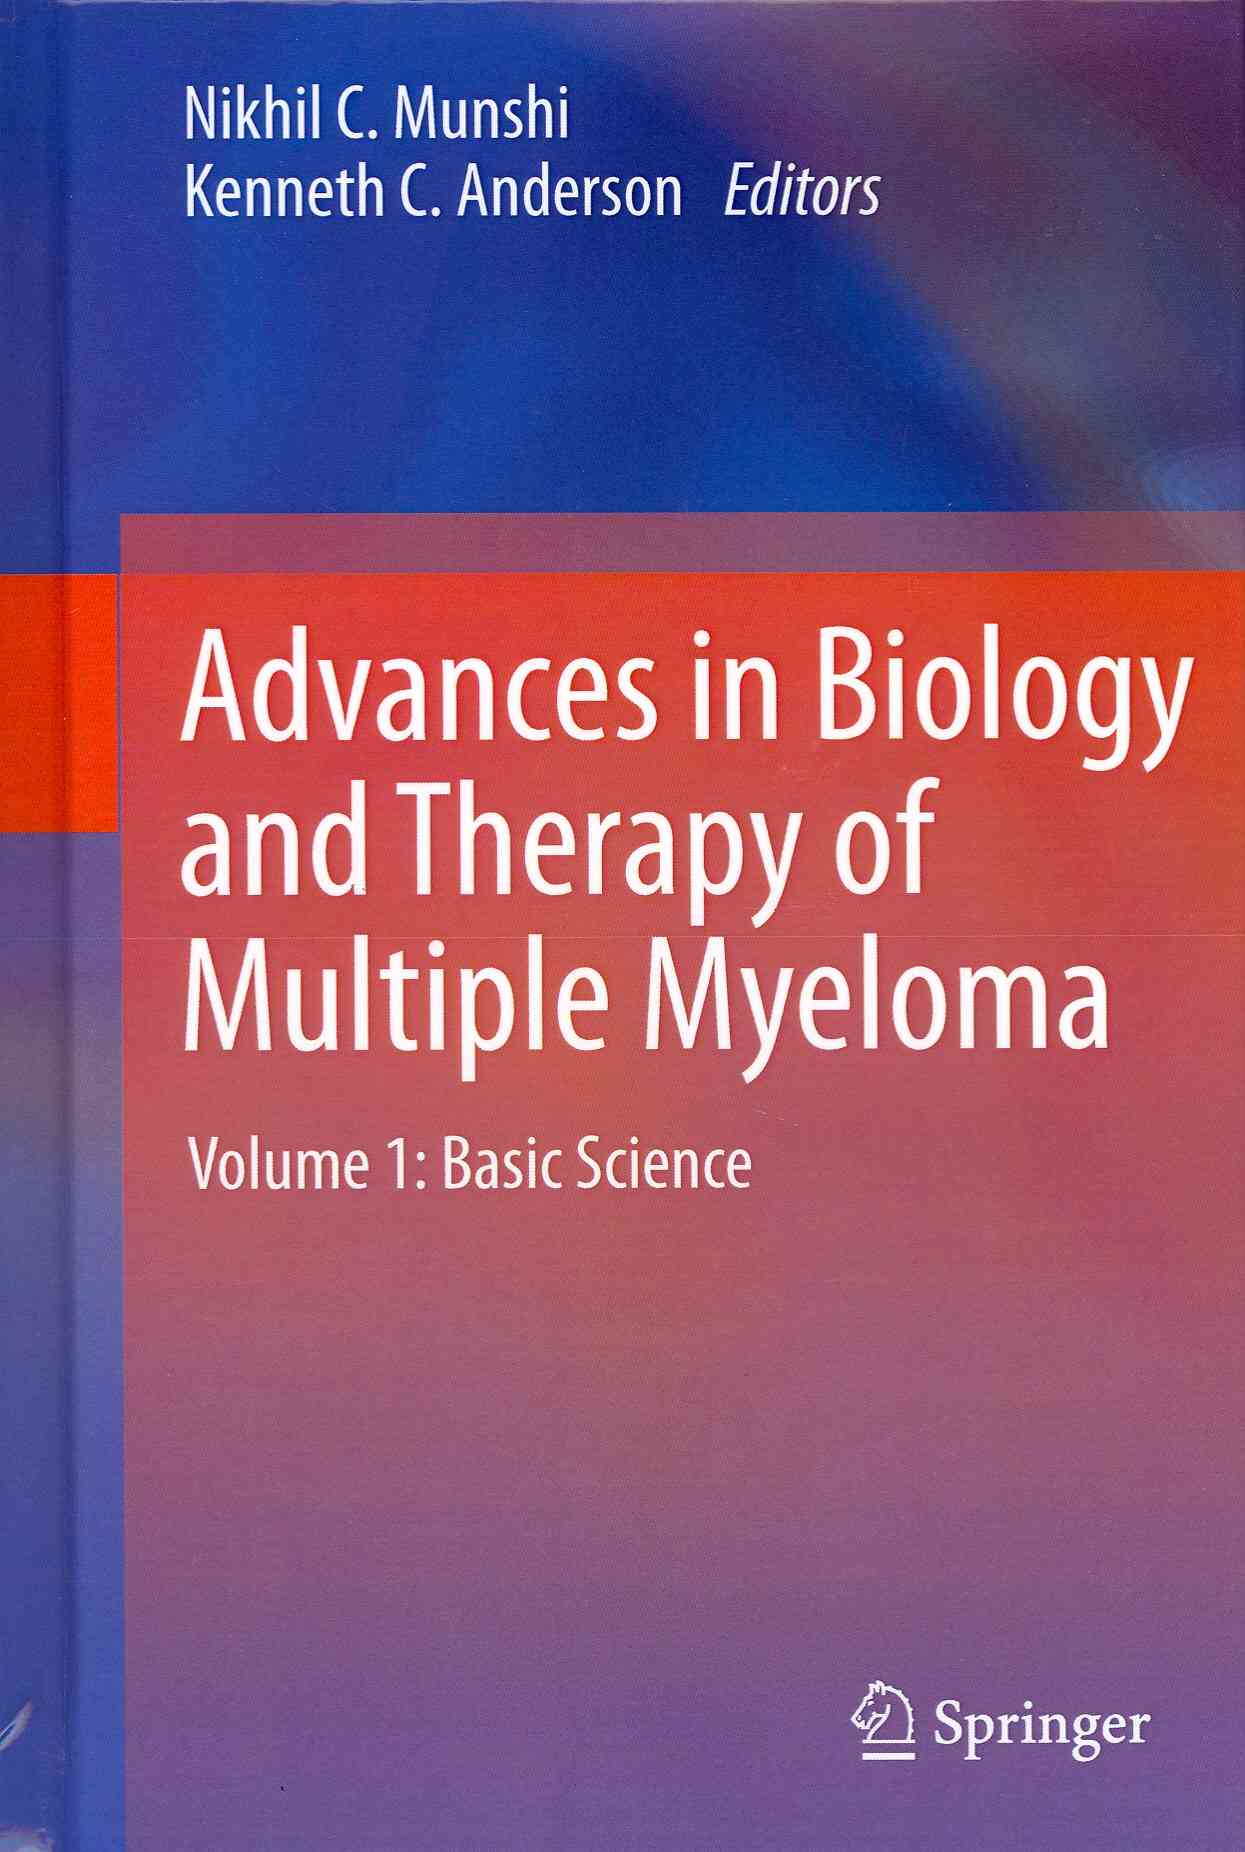 Advances in Biology and Therapy of Multiple Myeloma By Munshi, Nikhil C. (EDT)/ Anderson, Kenneth C. (EDT)